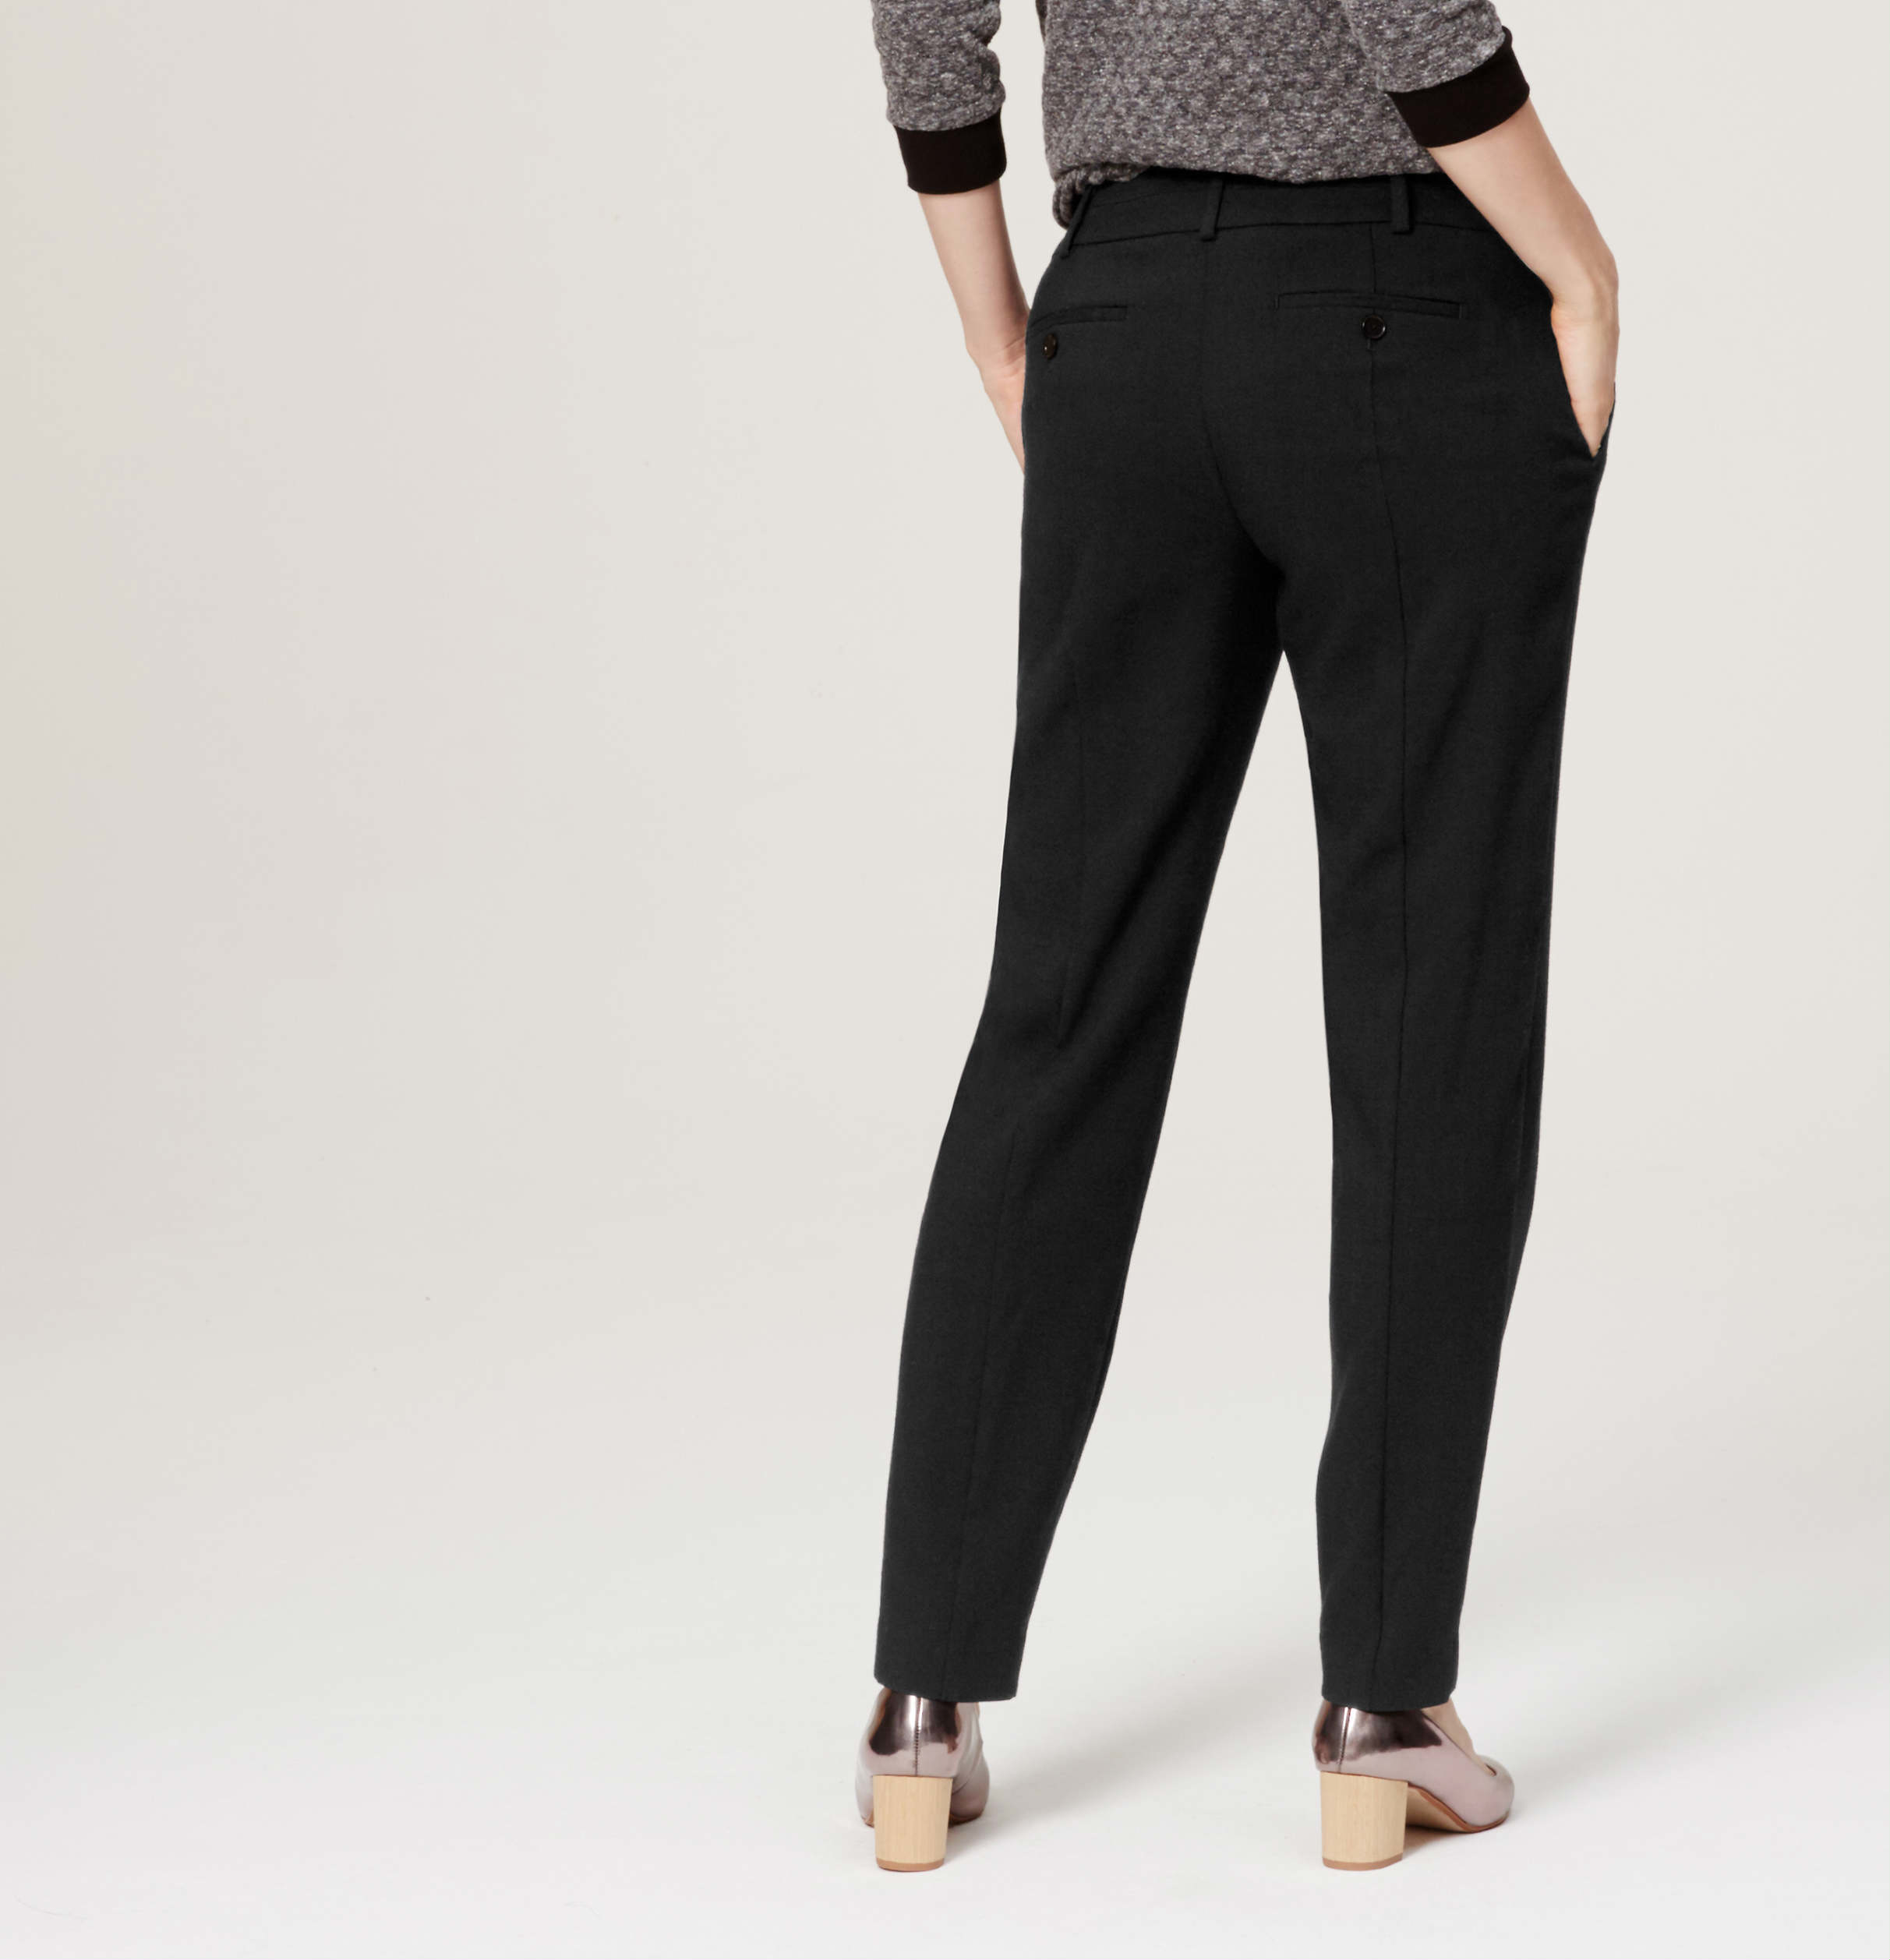 Loft Textured Pencil Pants In Julie Fit In Black Lyst